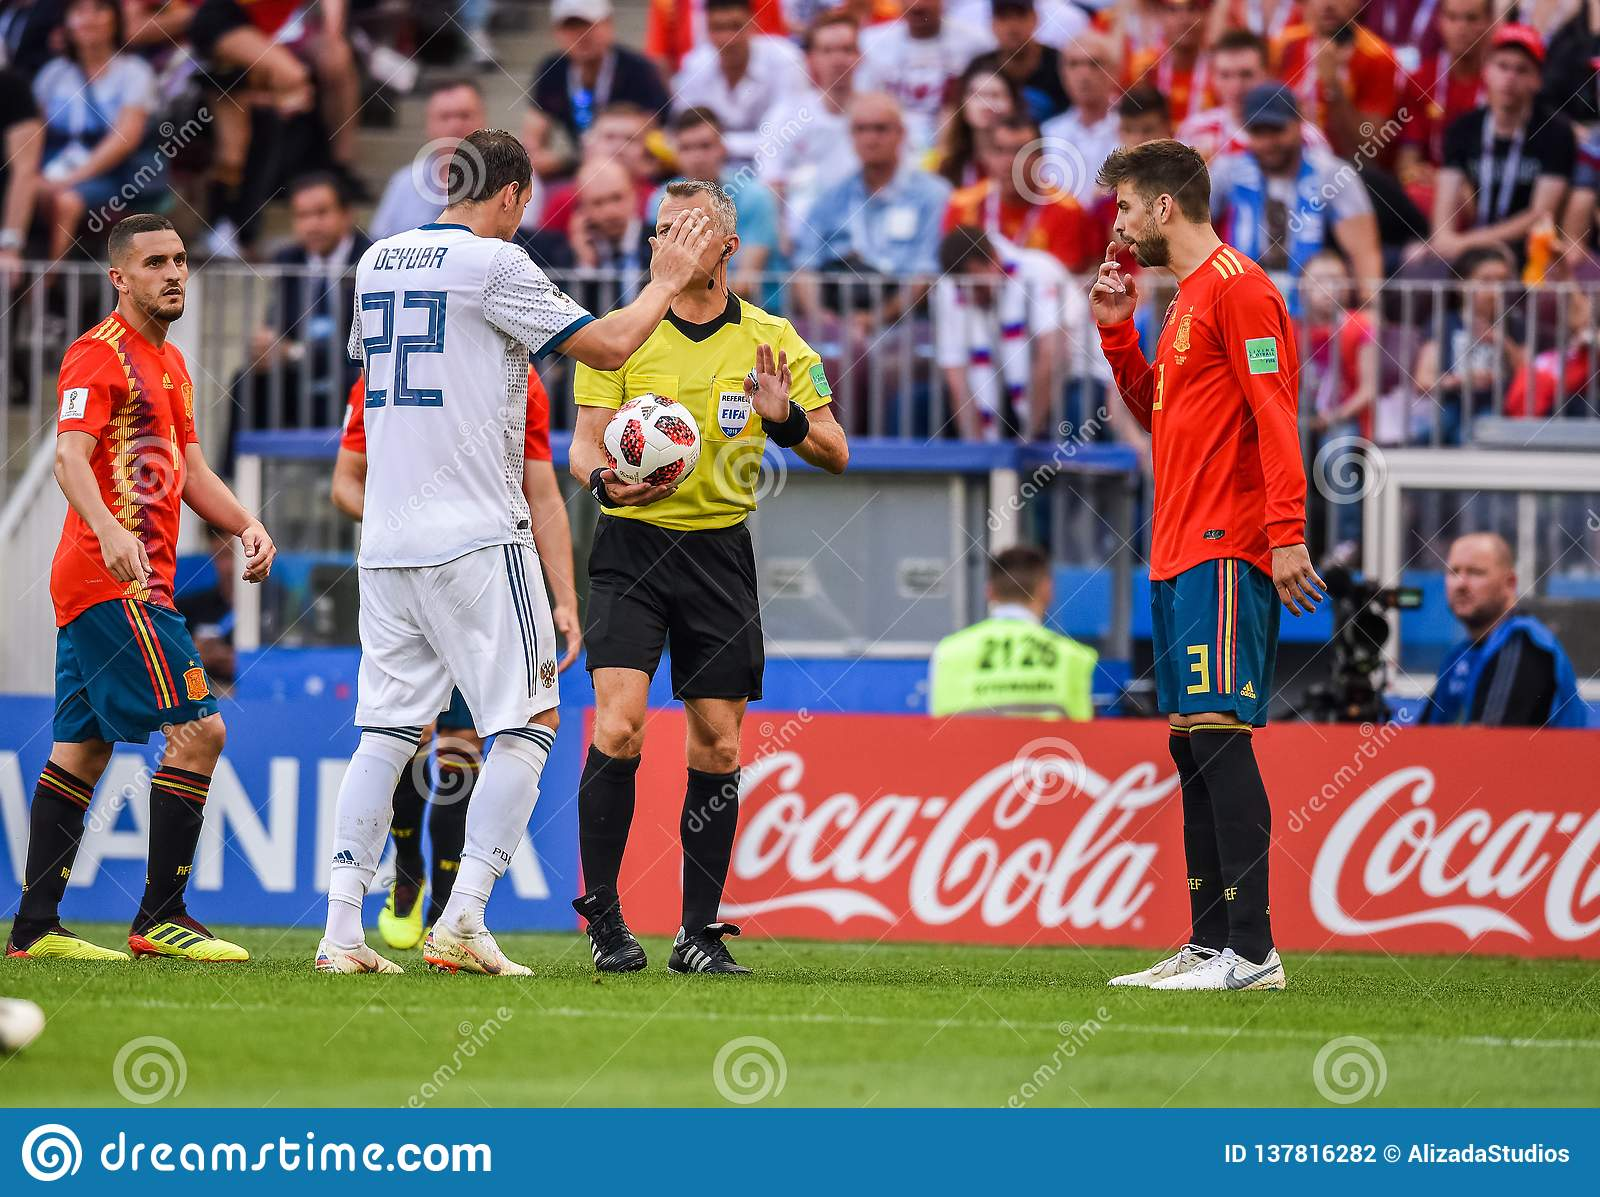 ca0affe15 Spain national football team players Gerard Pique and Koke with Russia  national team striker Artem Dzyuba and referee Bjorn Kuipers during FIFA  World Cup ...